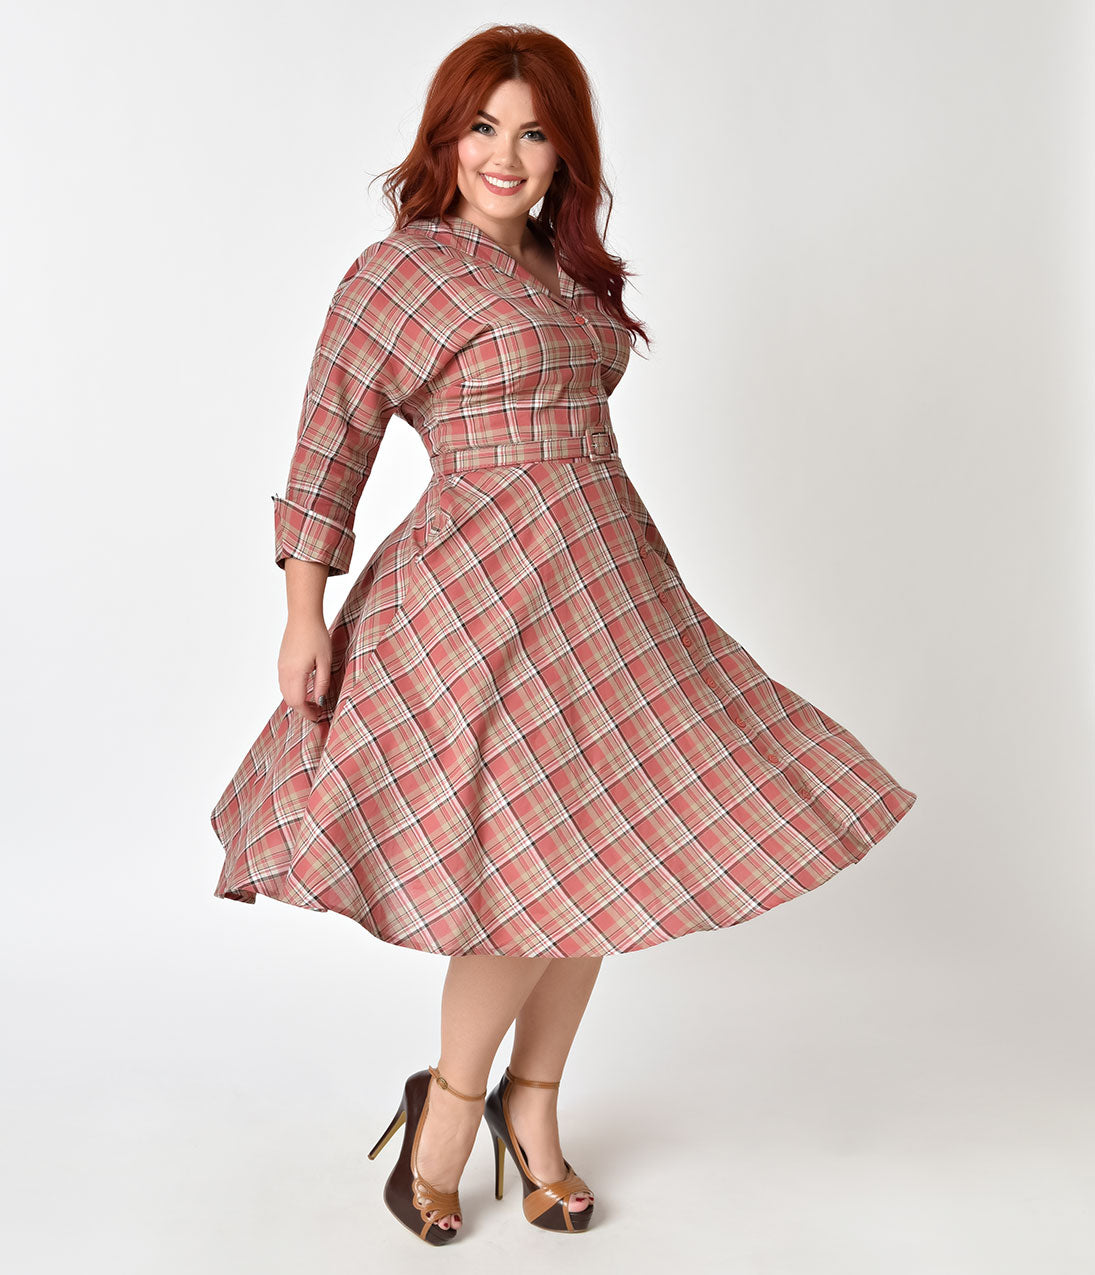 1950s Plus Size Fashion & Clothing History Unique Vintage Plus Size 1950S Style Pink Plaid Cotton Sleeved Brooklyn Shirtdress $98.00 AT vintagedancer.com